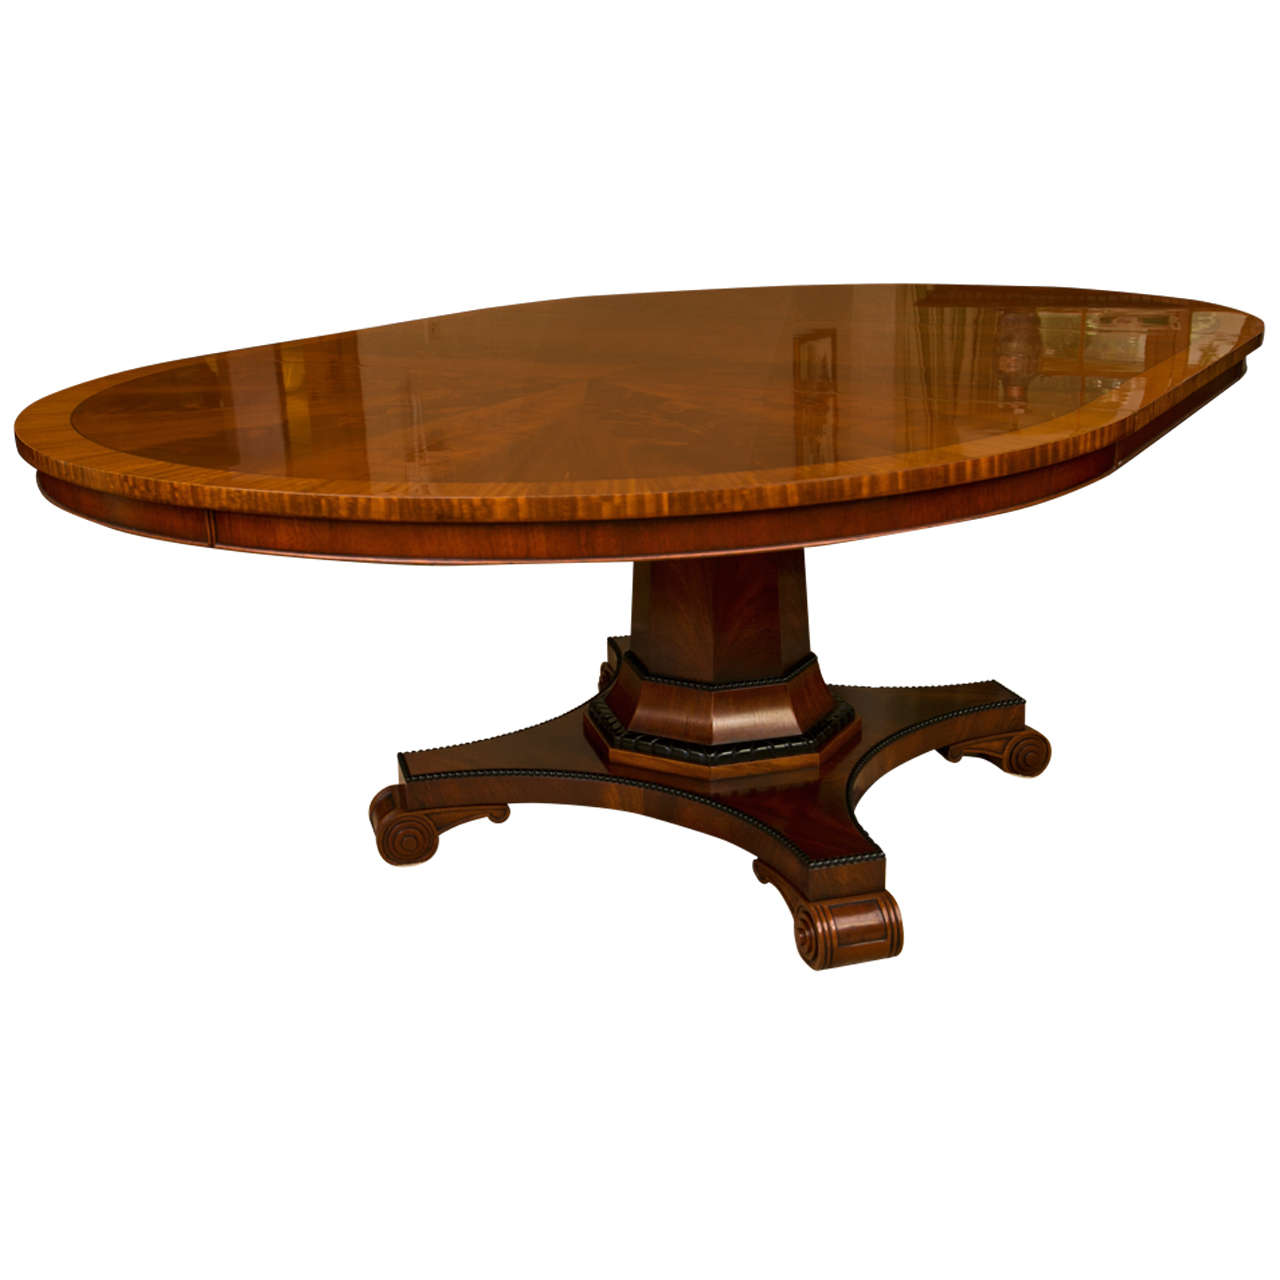 Custom regency style circular mahogany dining table for for Unique kitchen tables for sale